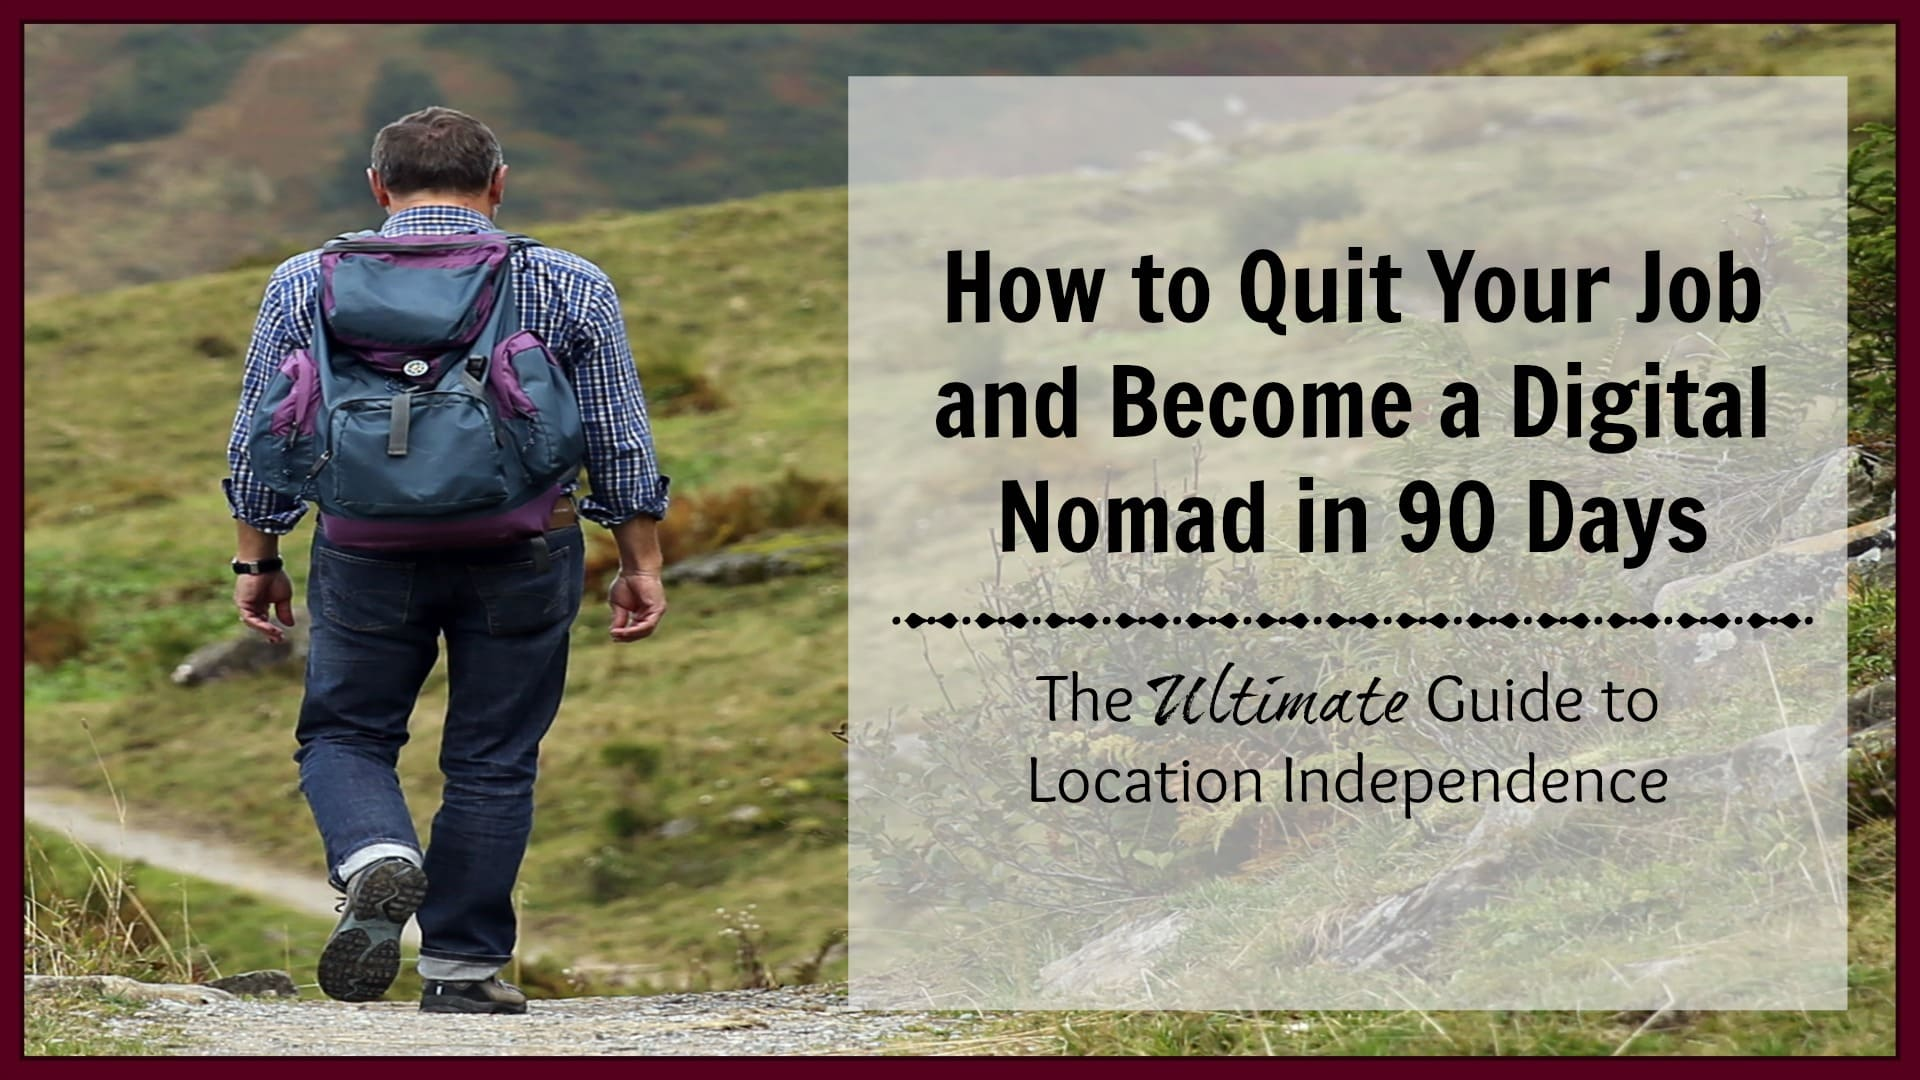 How to Quit Your Job and Become a Digital Nomad in 90 Days: The Ultimate Guide